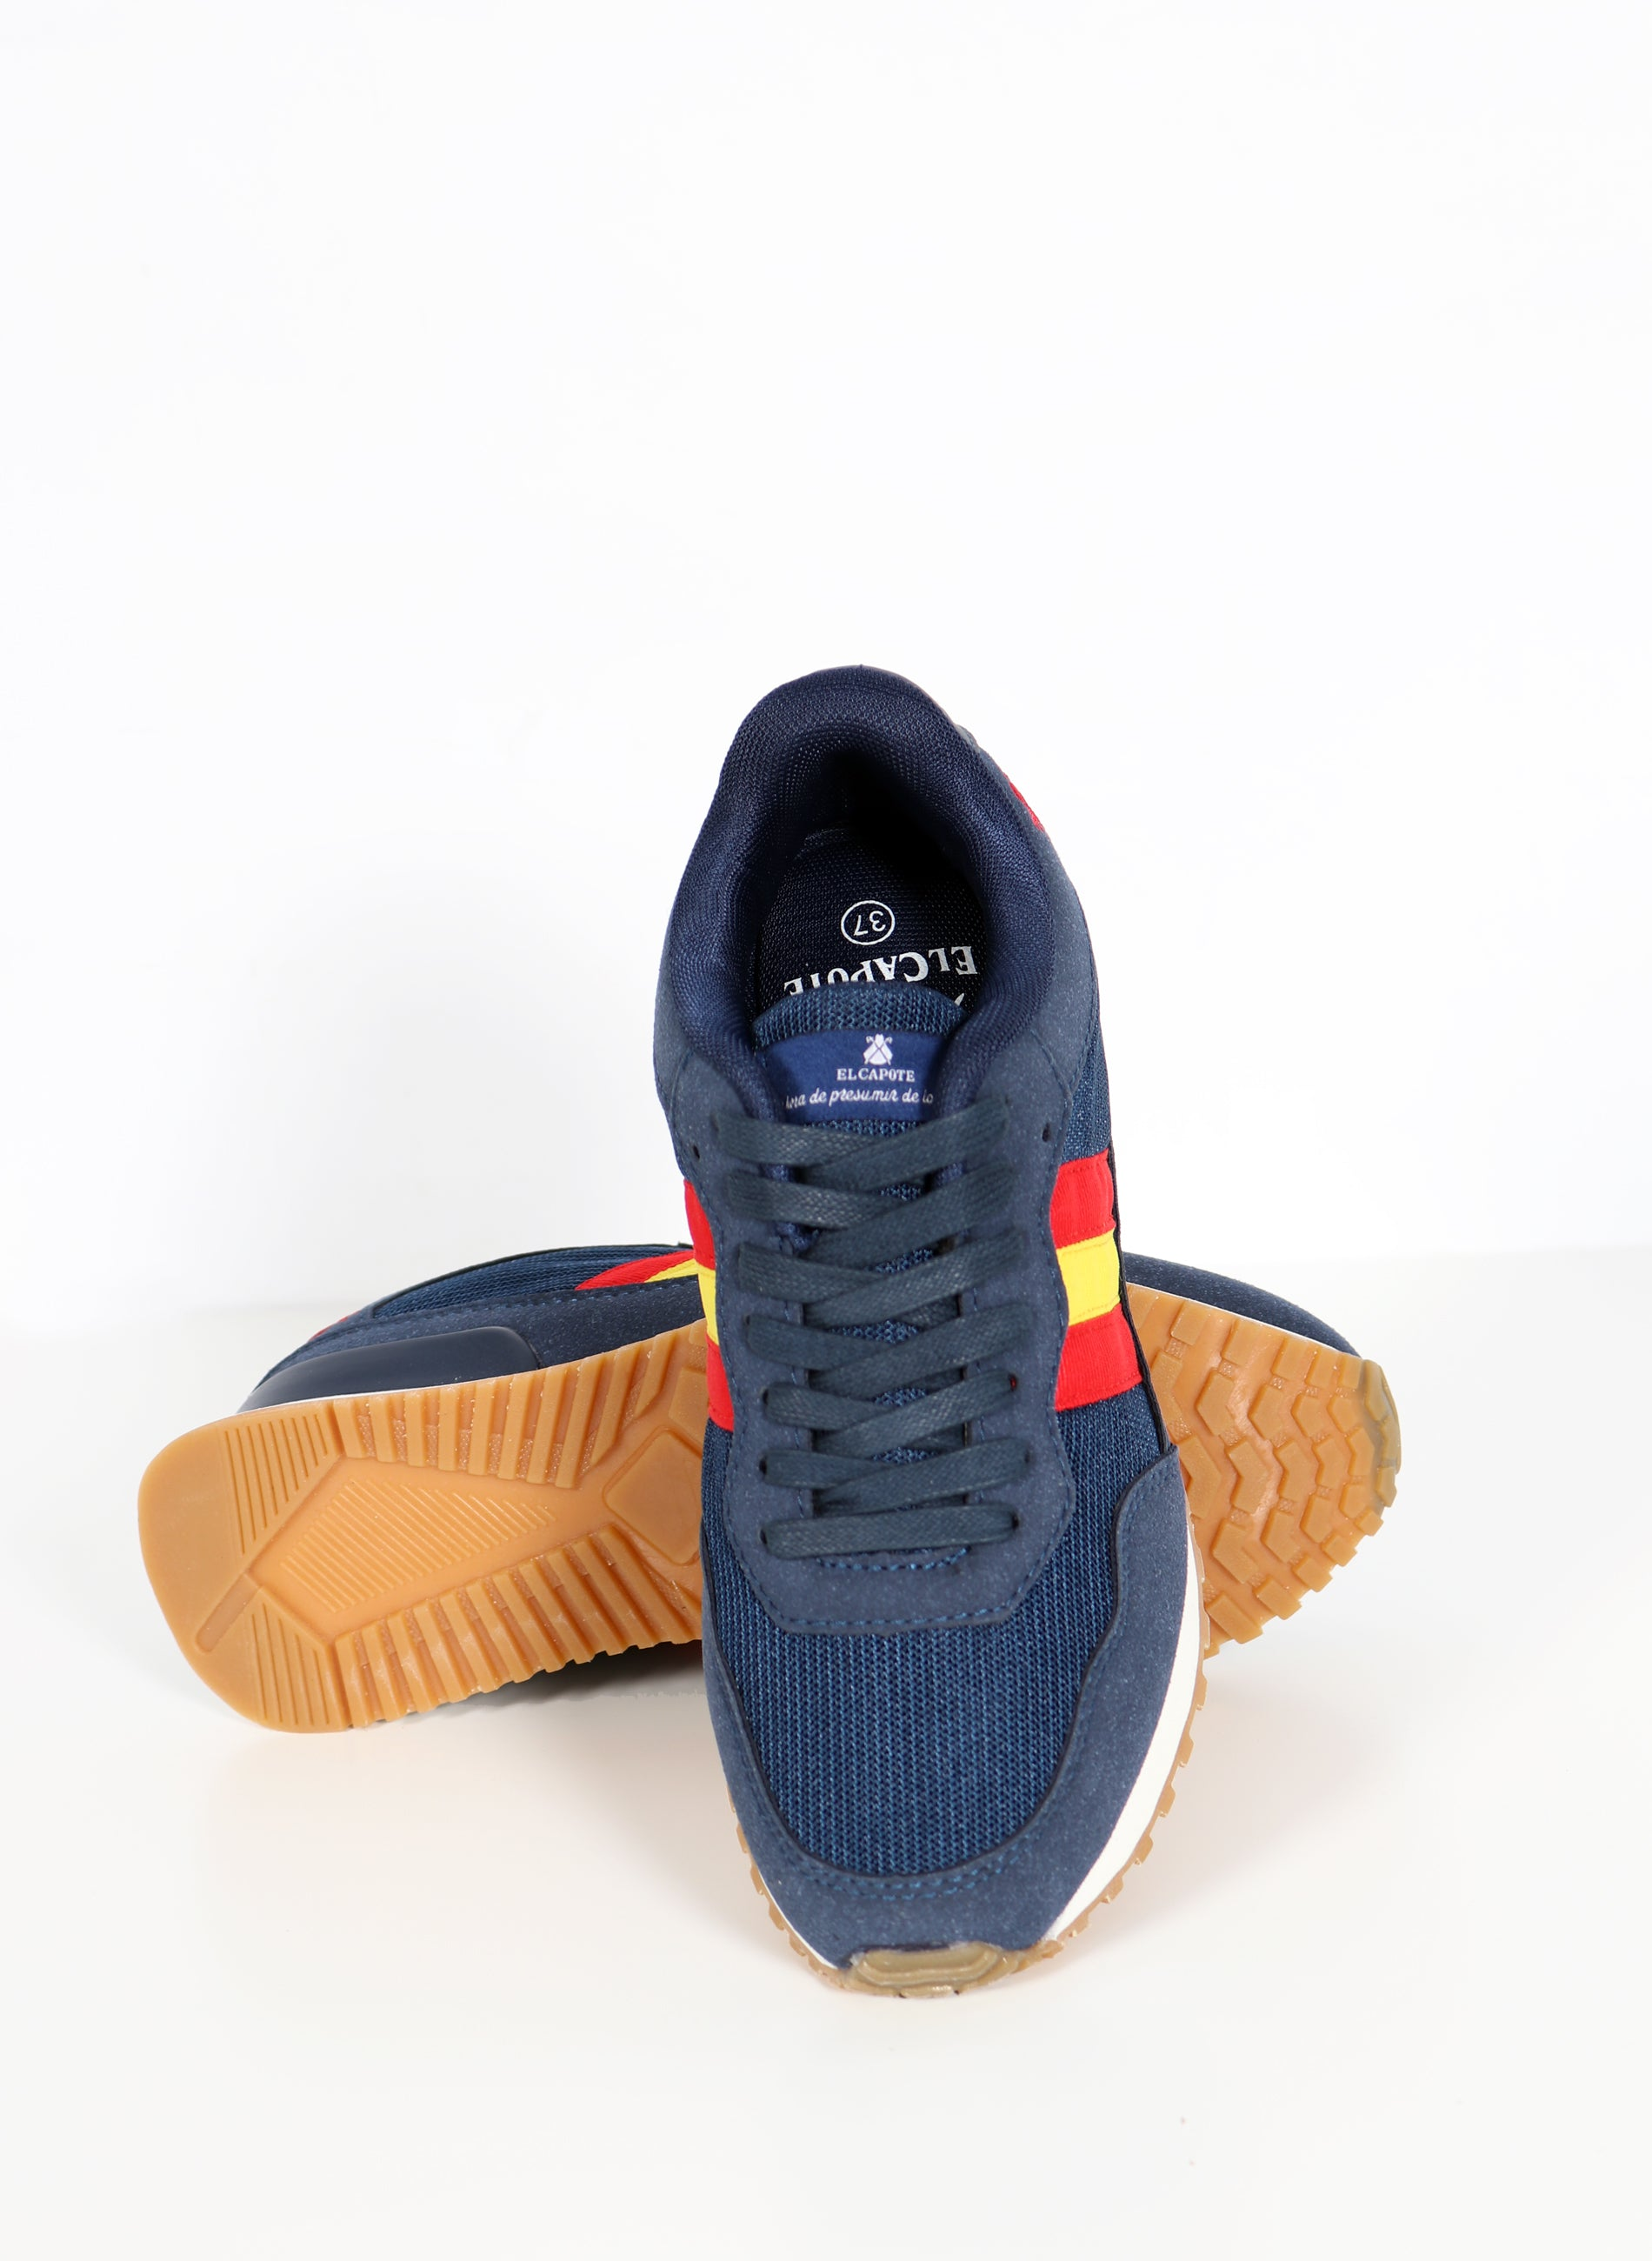 Unisex Navy Sneaker Flag of Spain